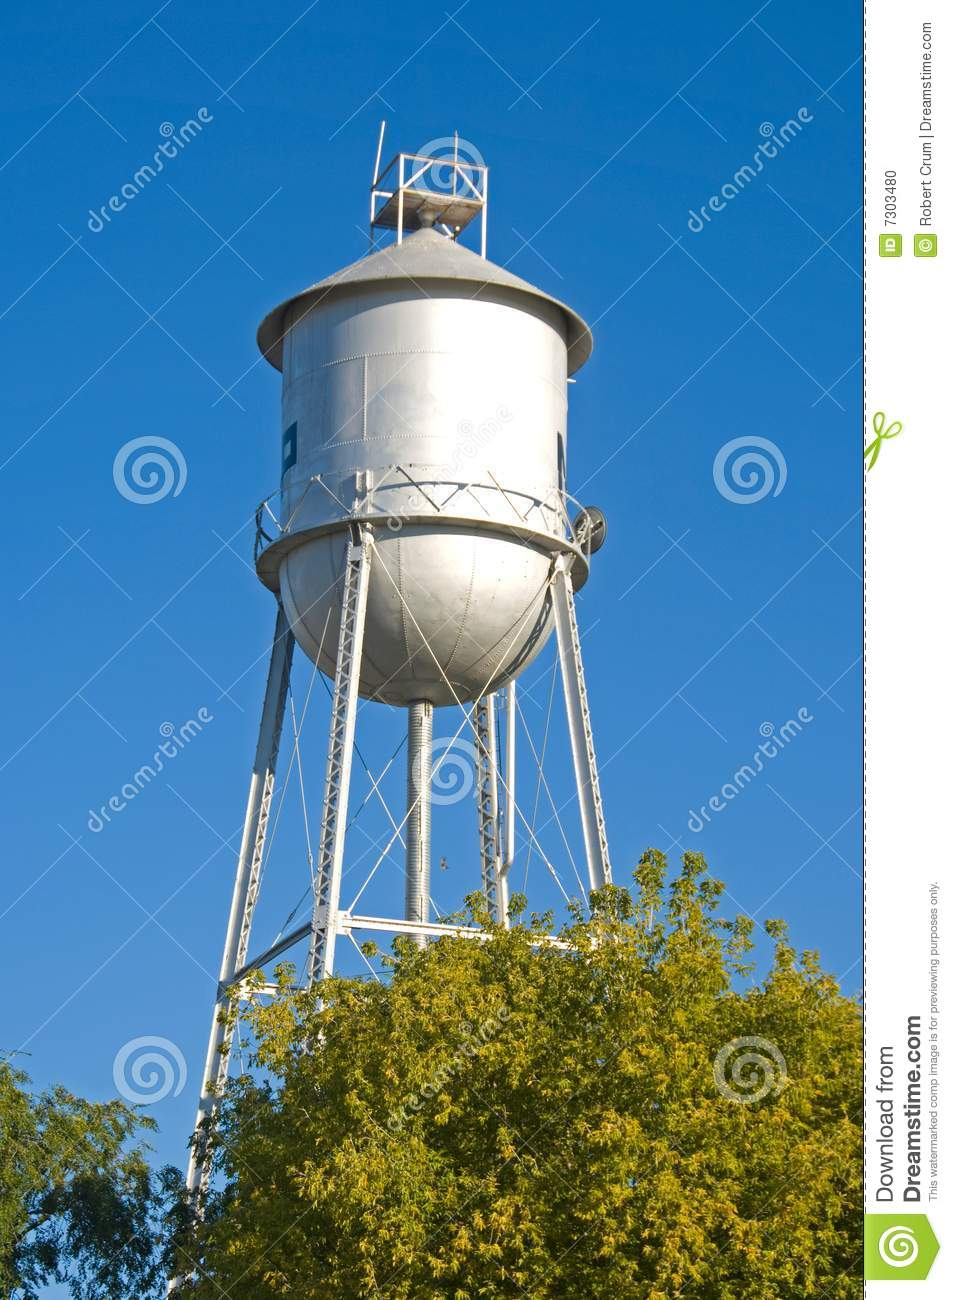 Old Fashioned Water Tower Stock Photo Image 7303480